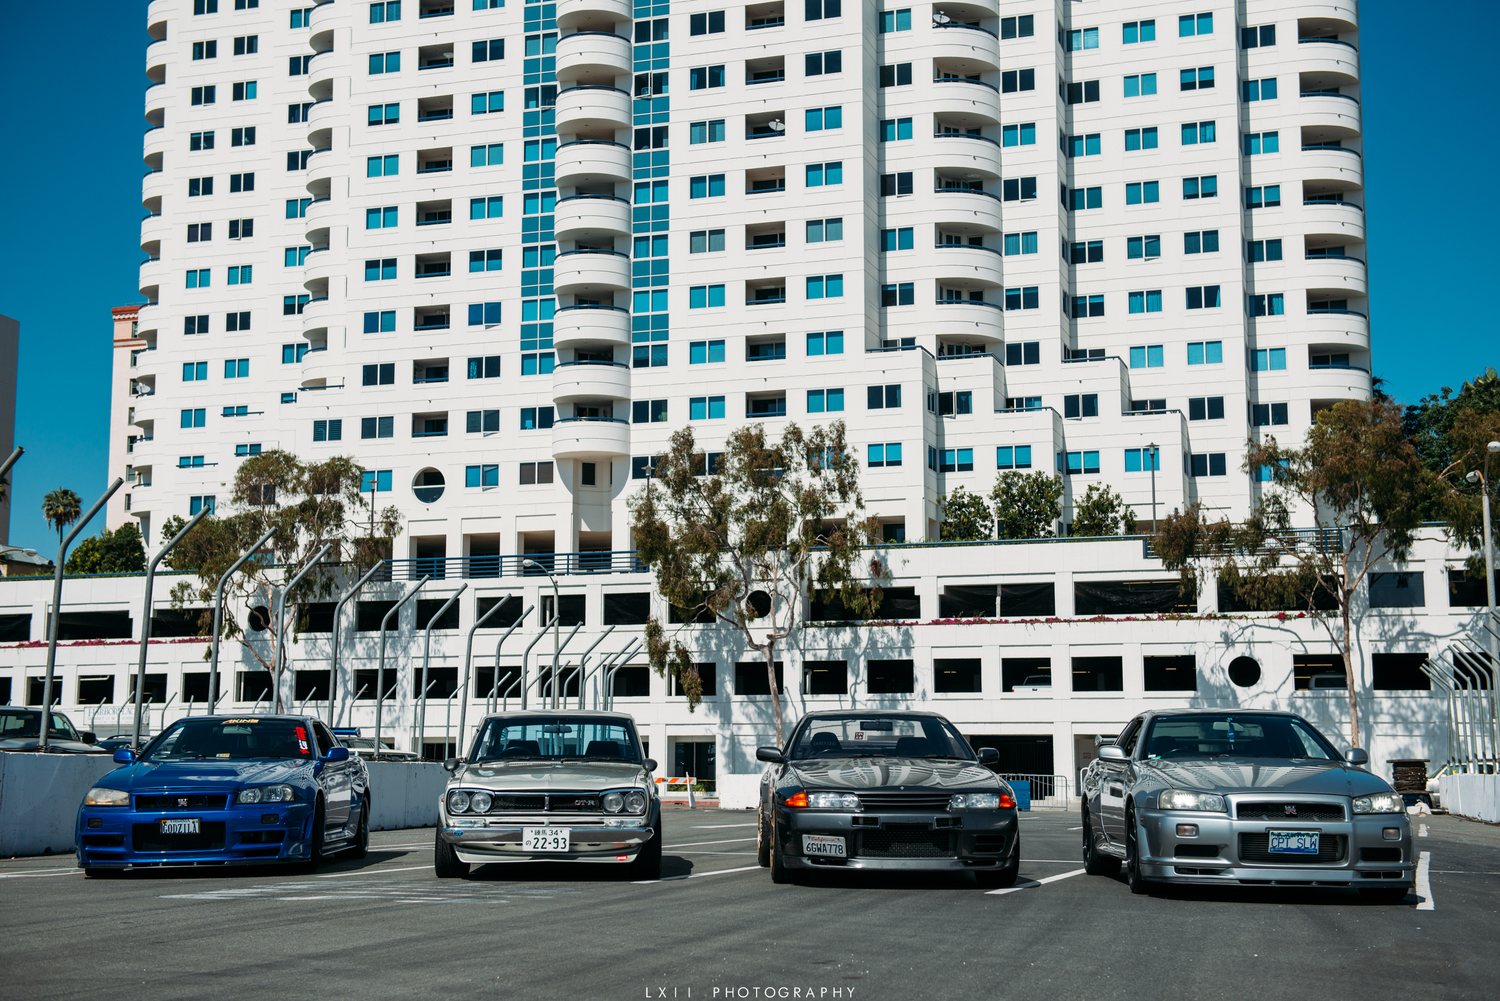 Skylines in Long Beach